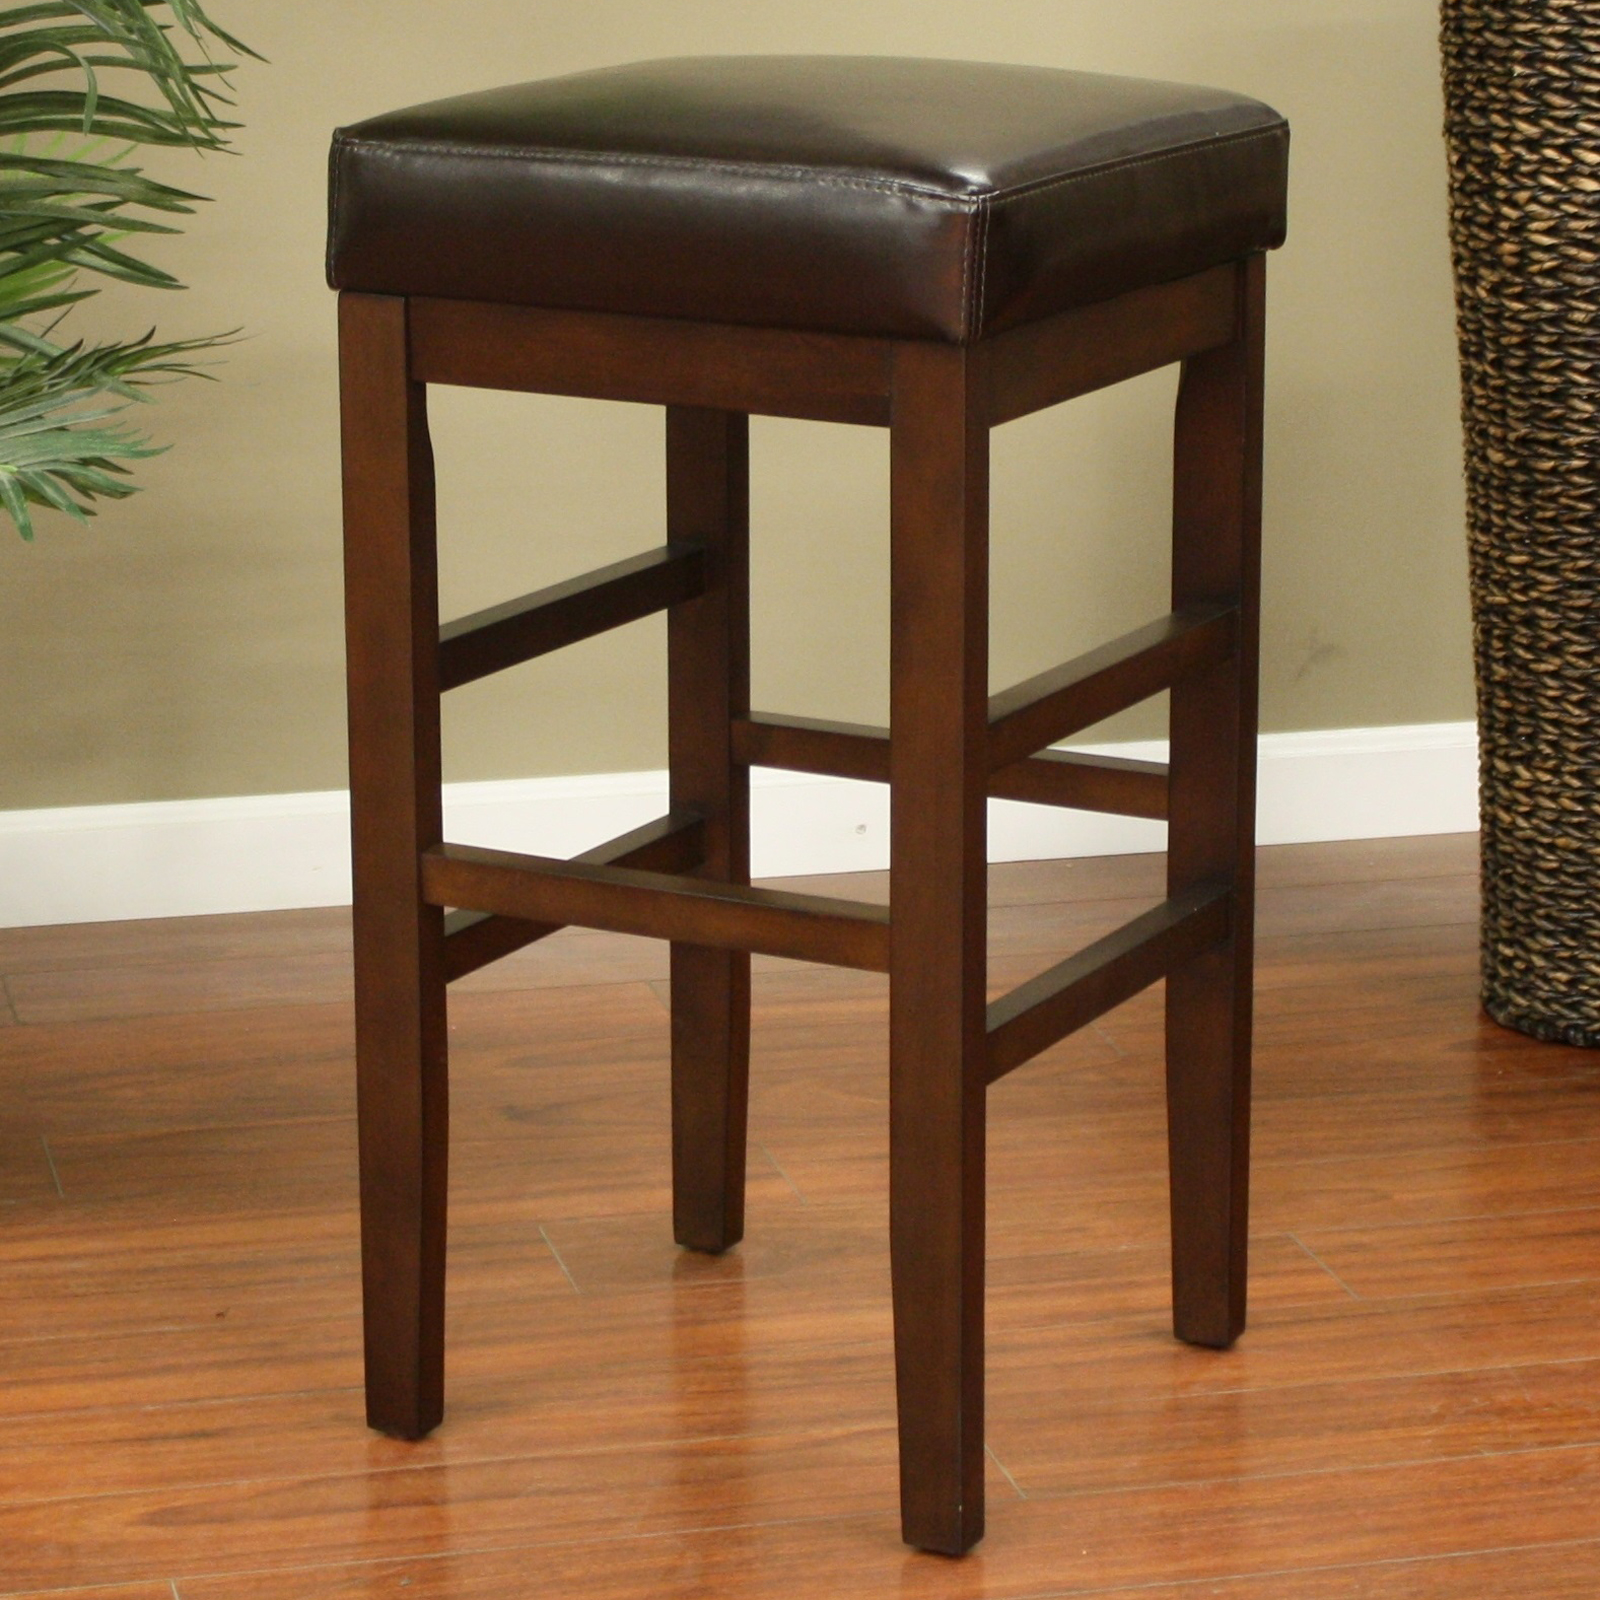 Ahb empire extra tall bar stool stools at hayneedle